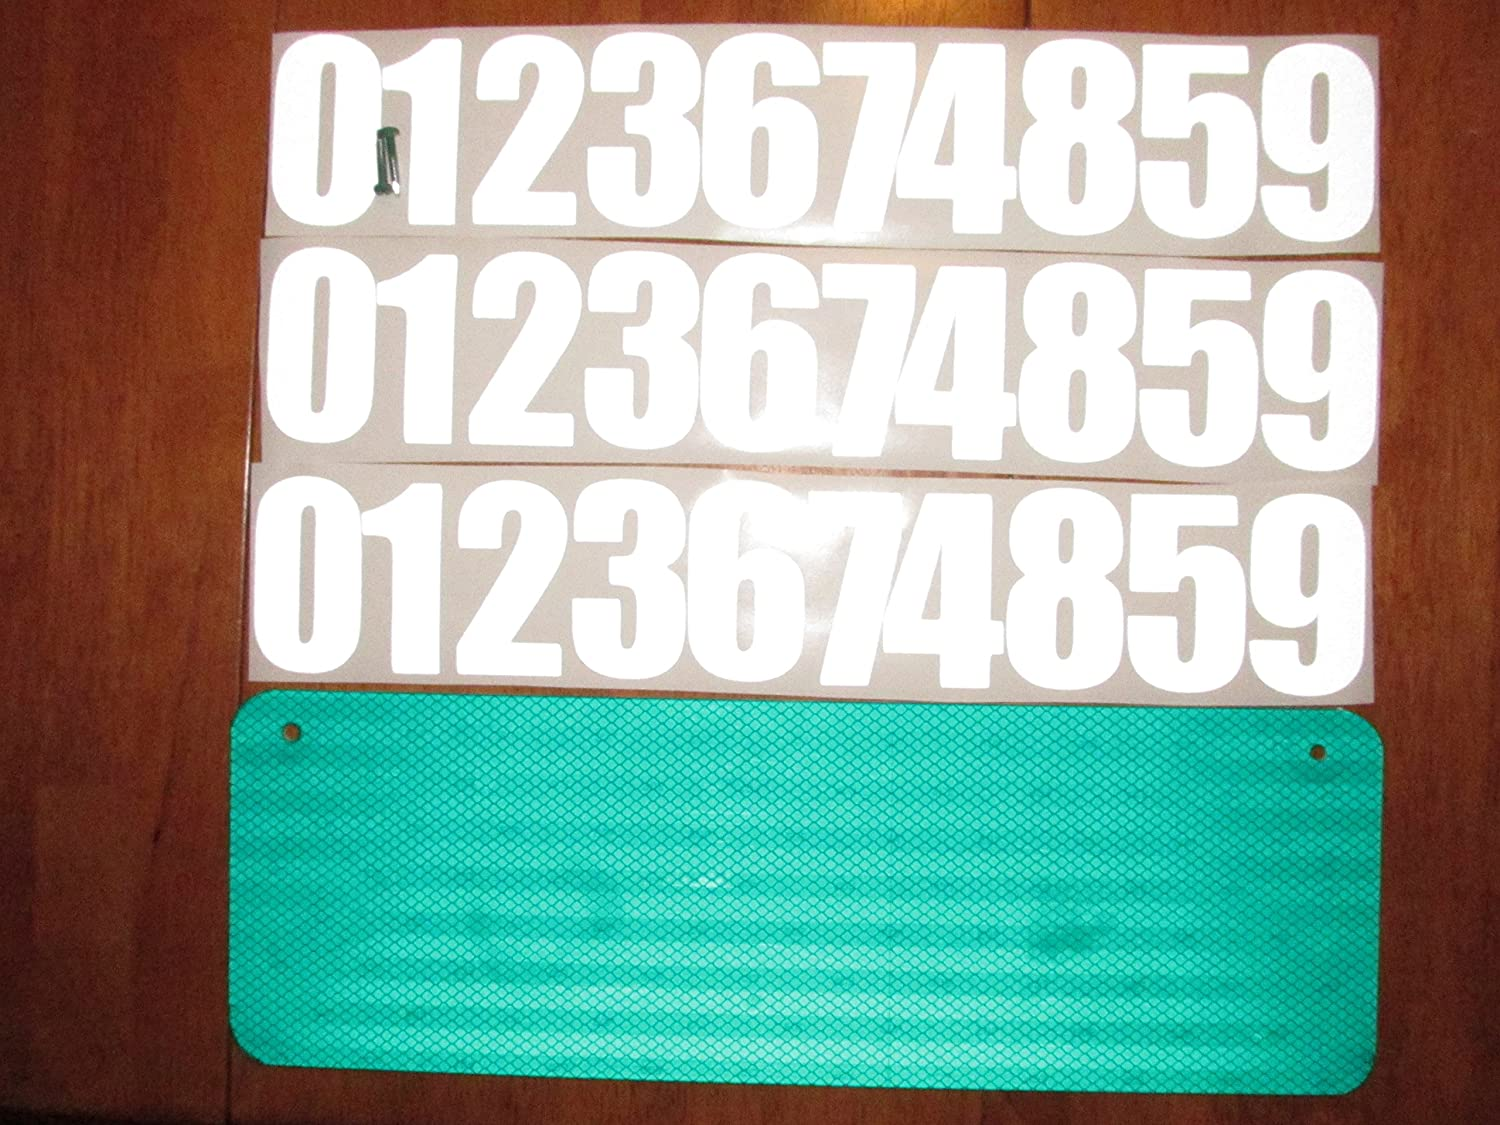 DIY Premium 911 Green 3M Prismatic Reflective Address Sign Kit. W/ 3 Inch Numbers and Reflective Plate for Home or Business By Mg2 Signs MG2Signs